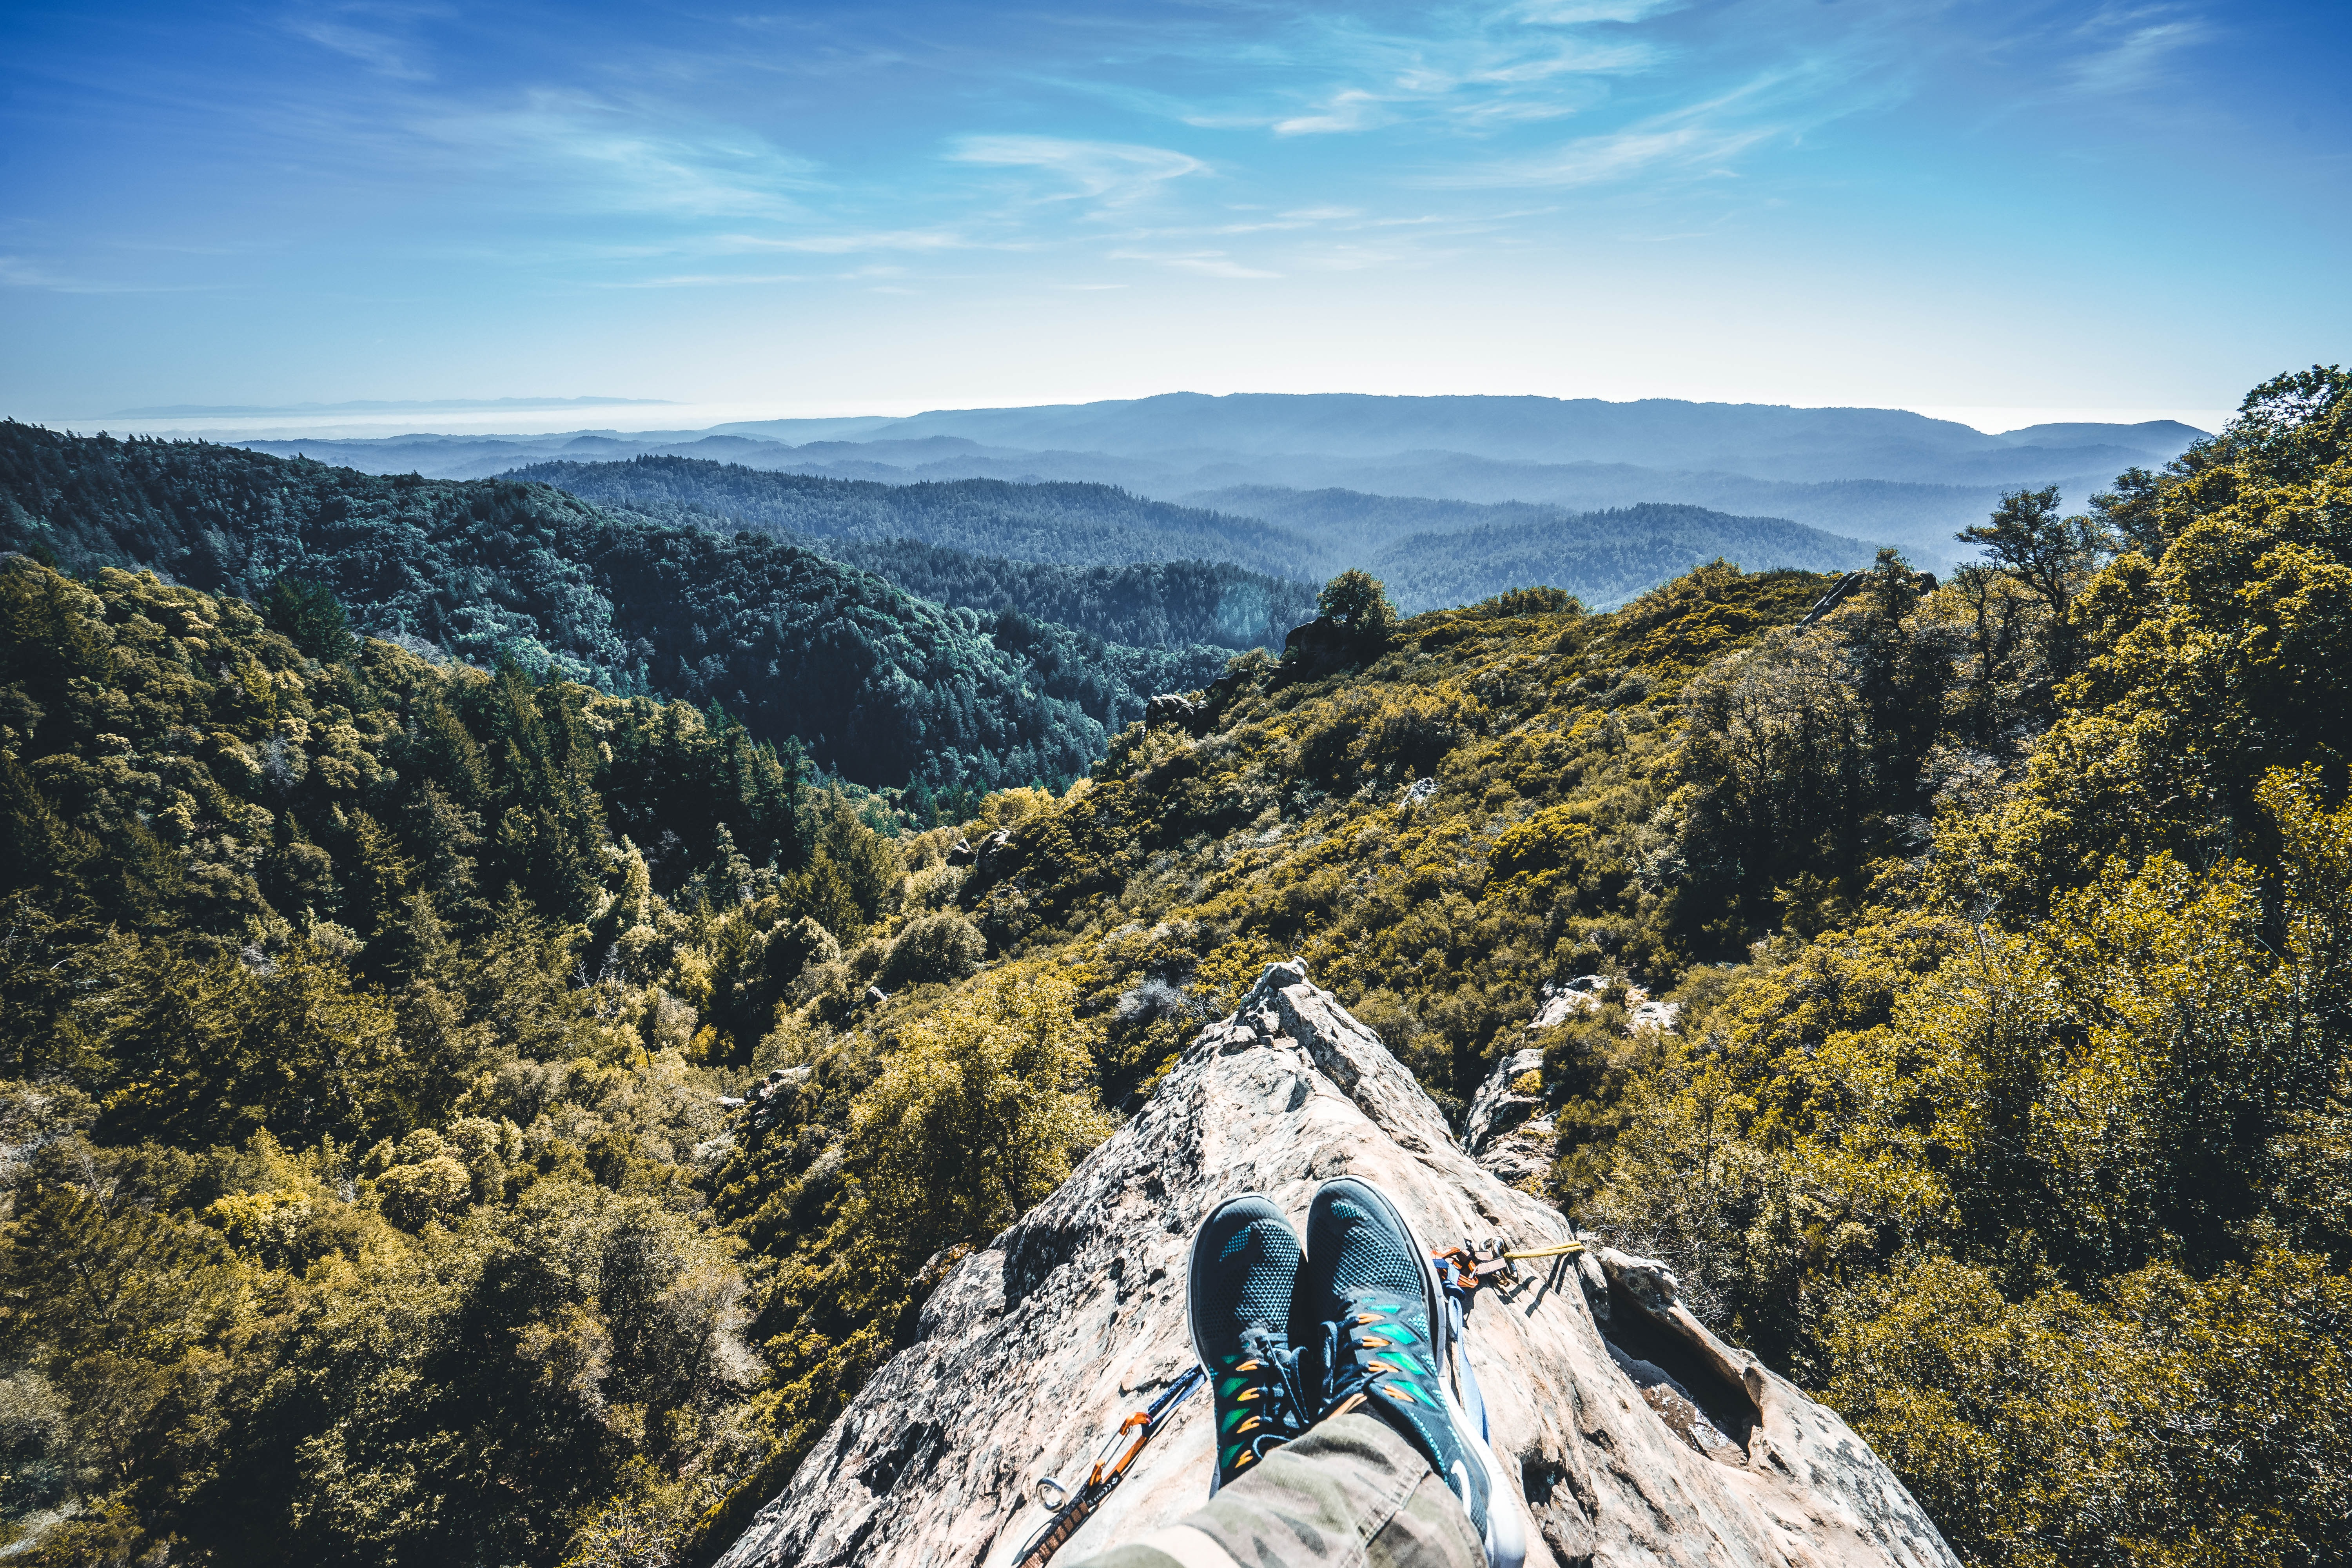 A mountaineer's outstretched legs on a rocky ridge